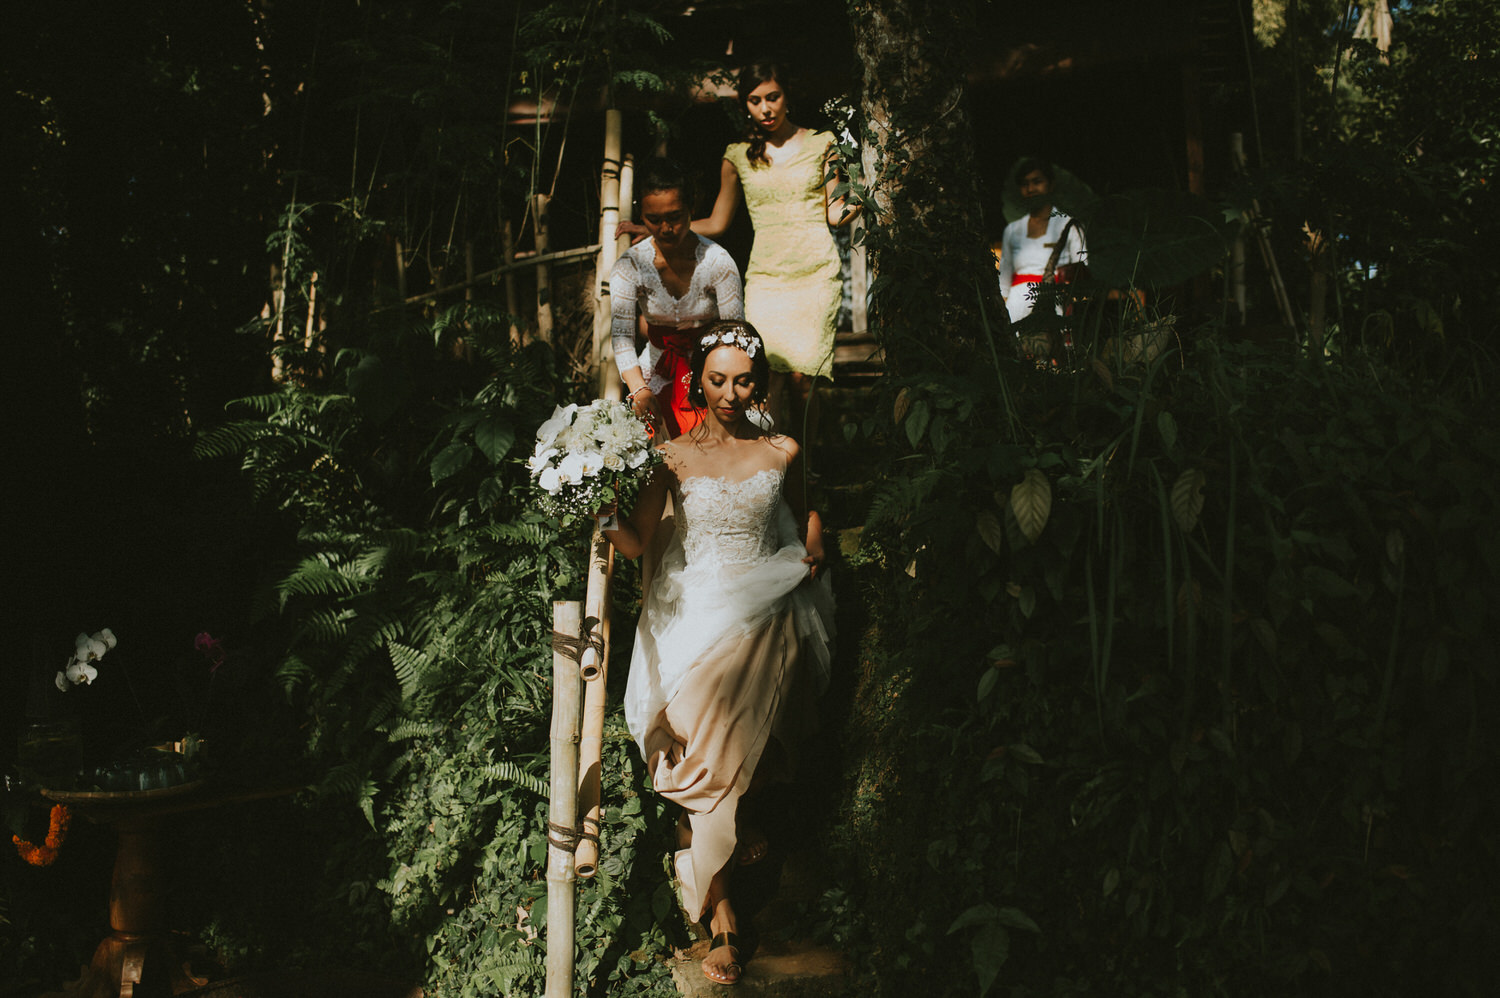 bali-wedding-ubud-wedding-wedding-destination-diktatphotography-kadek-artayasa-elaine-and-glenn-057